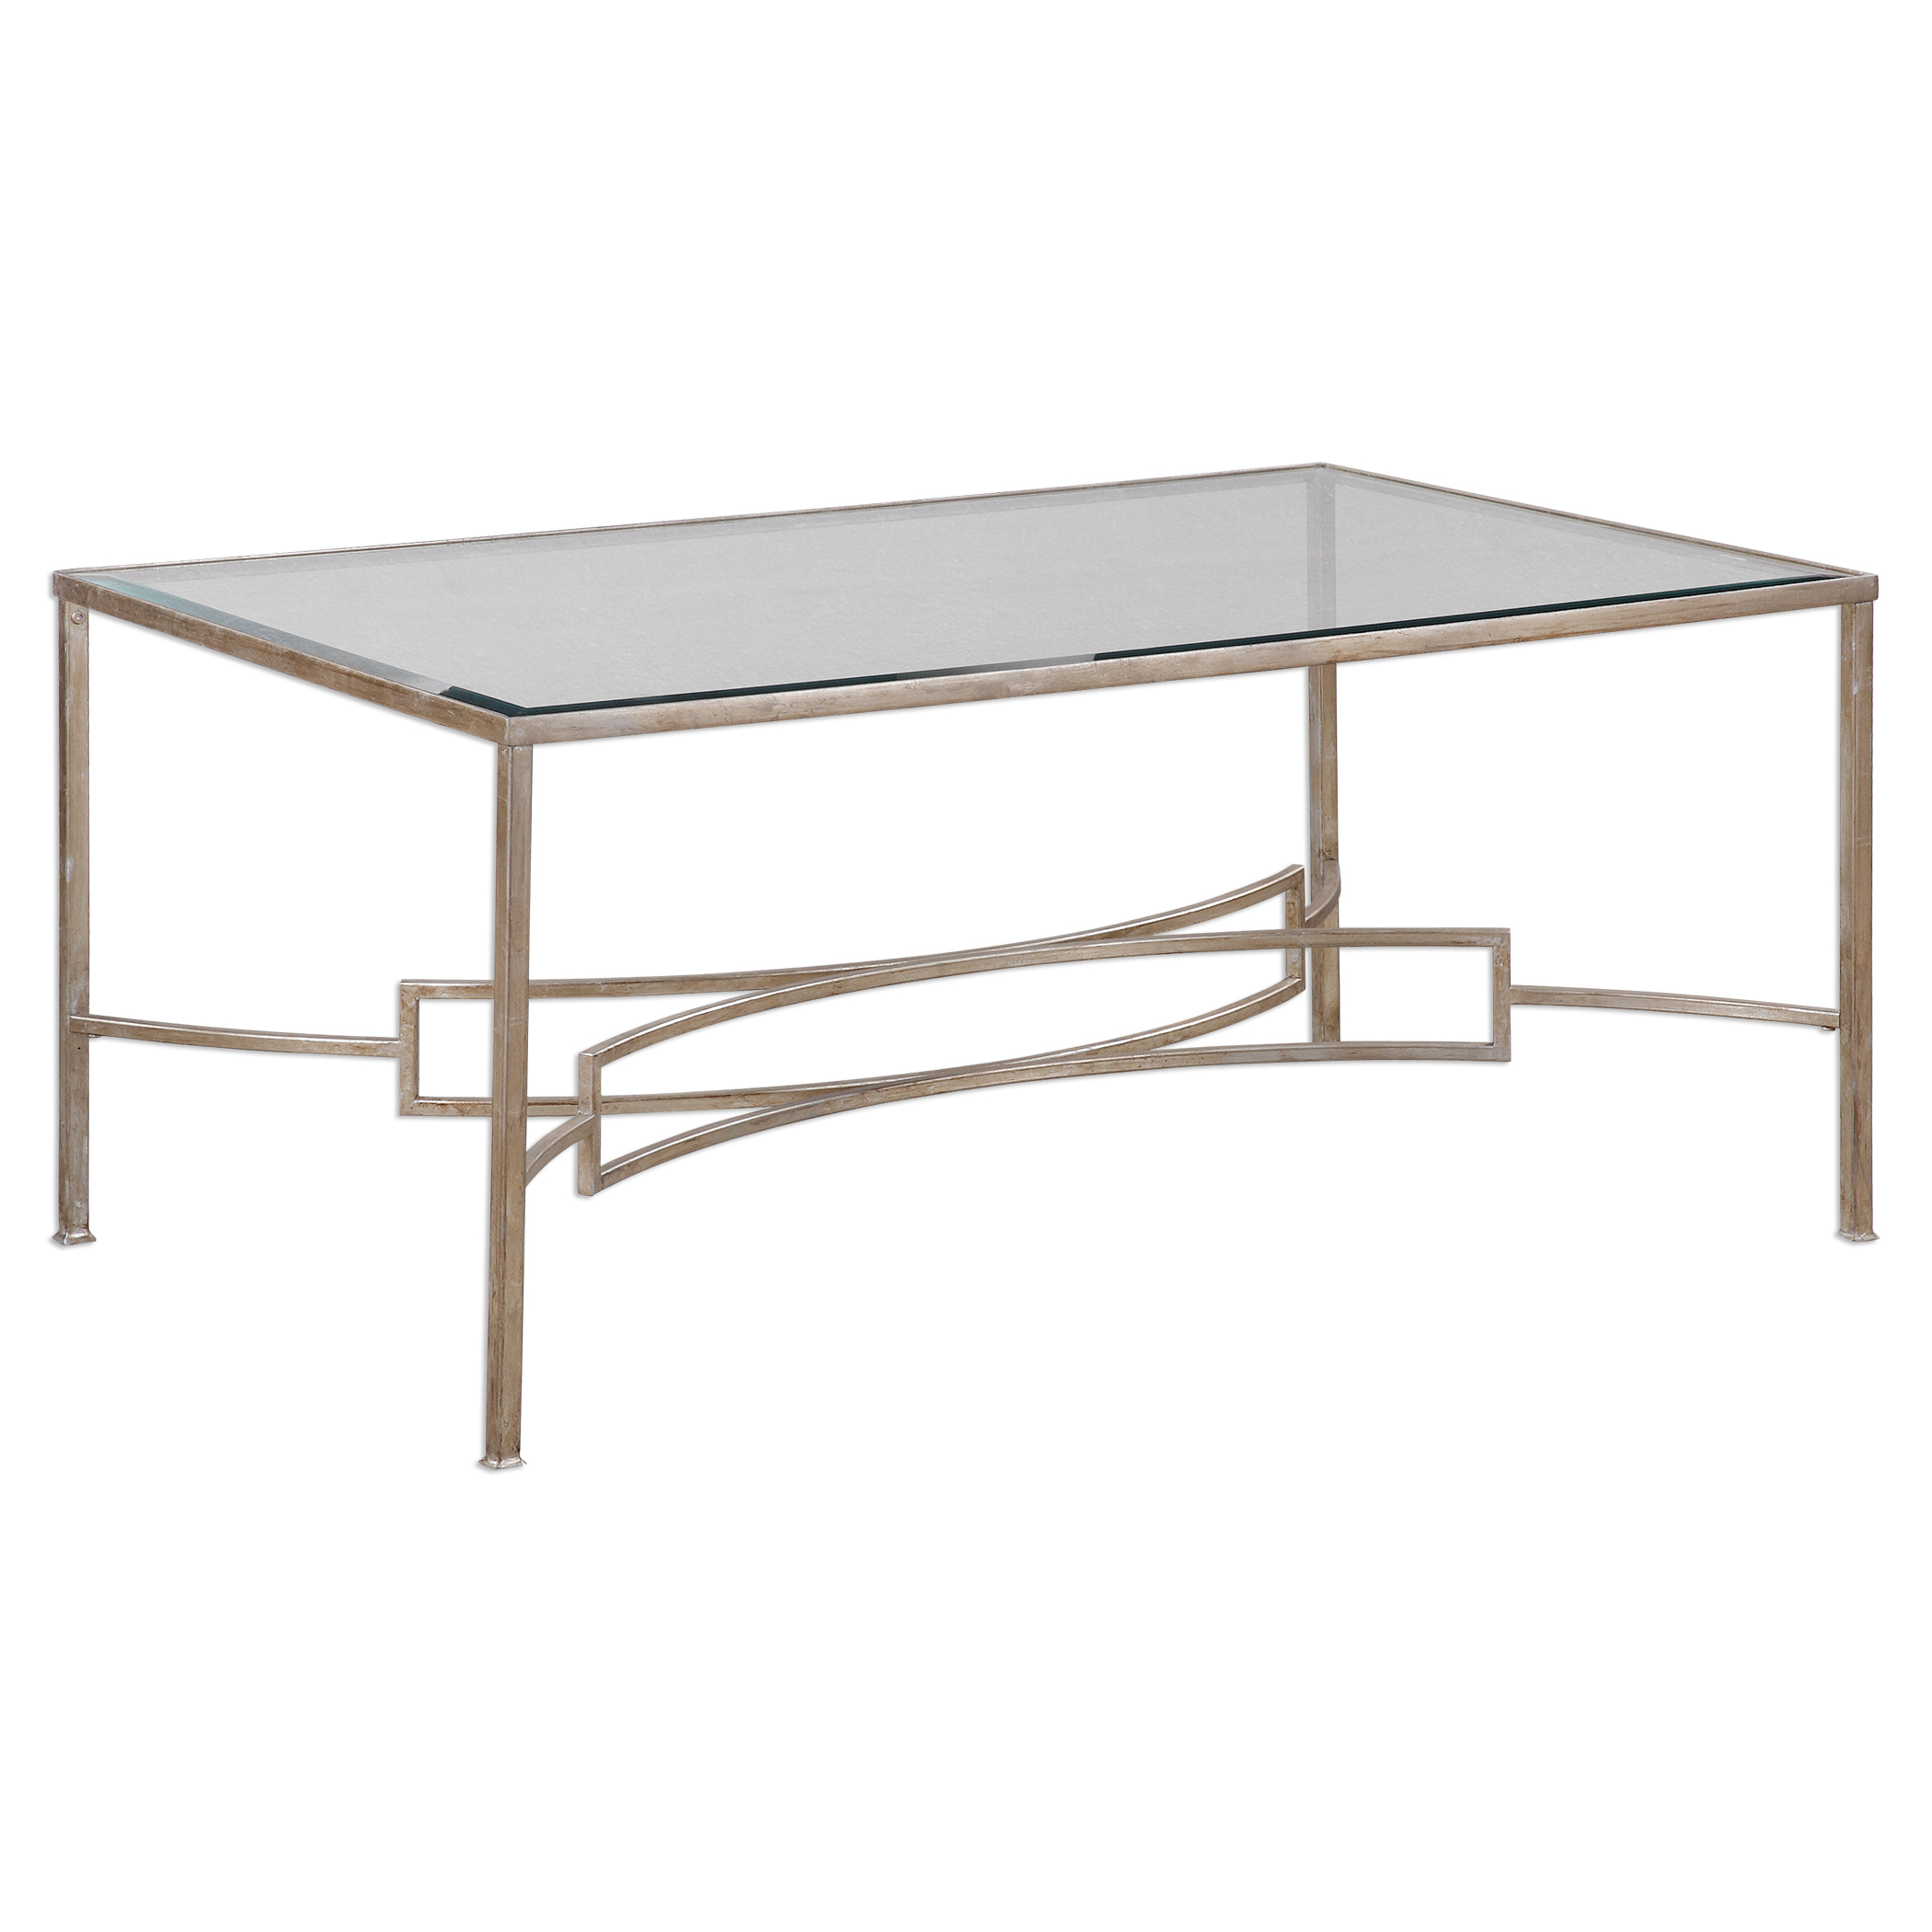 Accent Furniture - Occasional Tables Eilinora Silver Coffee Table by Uttermost at Del Sol Furniture